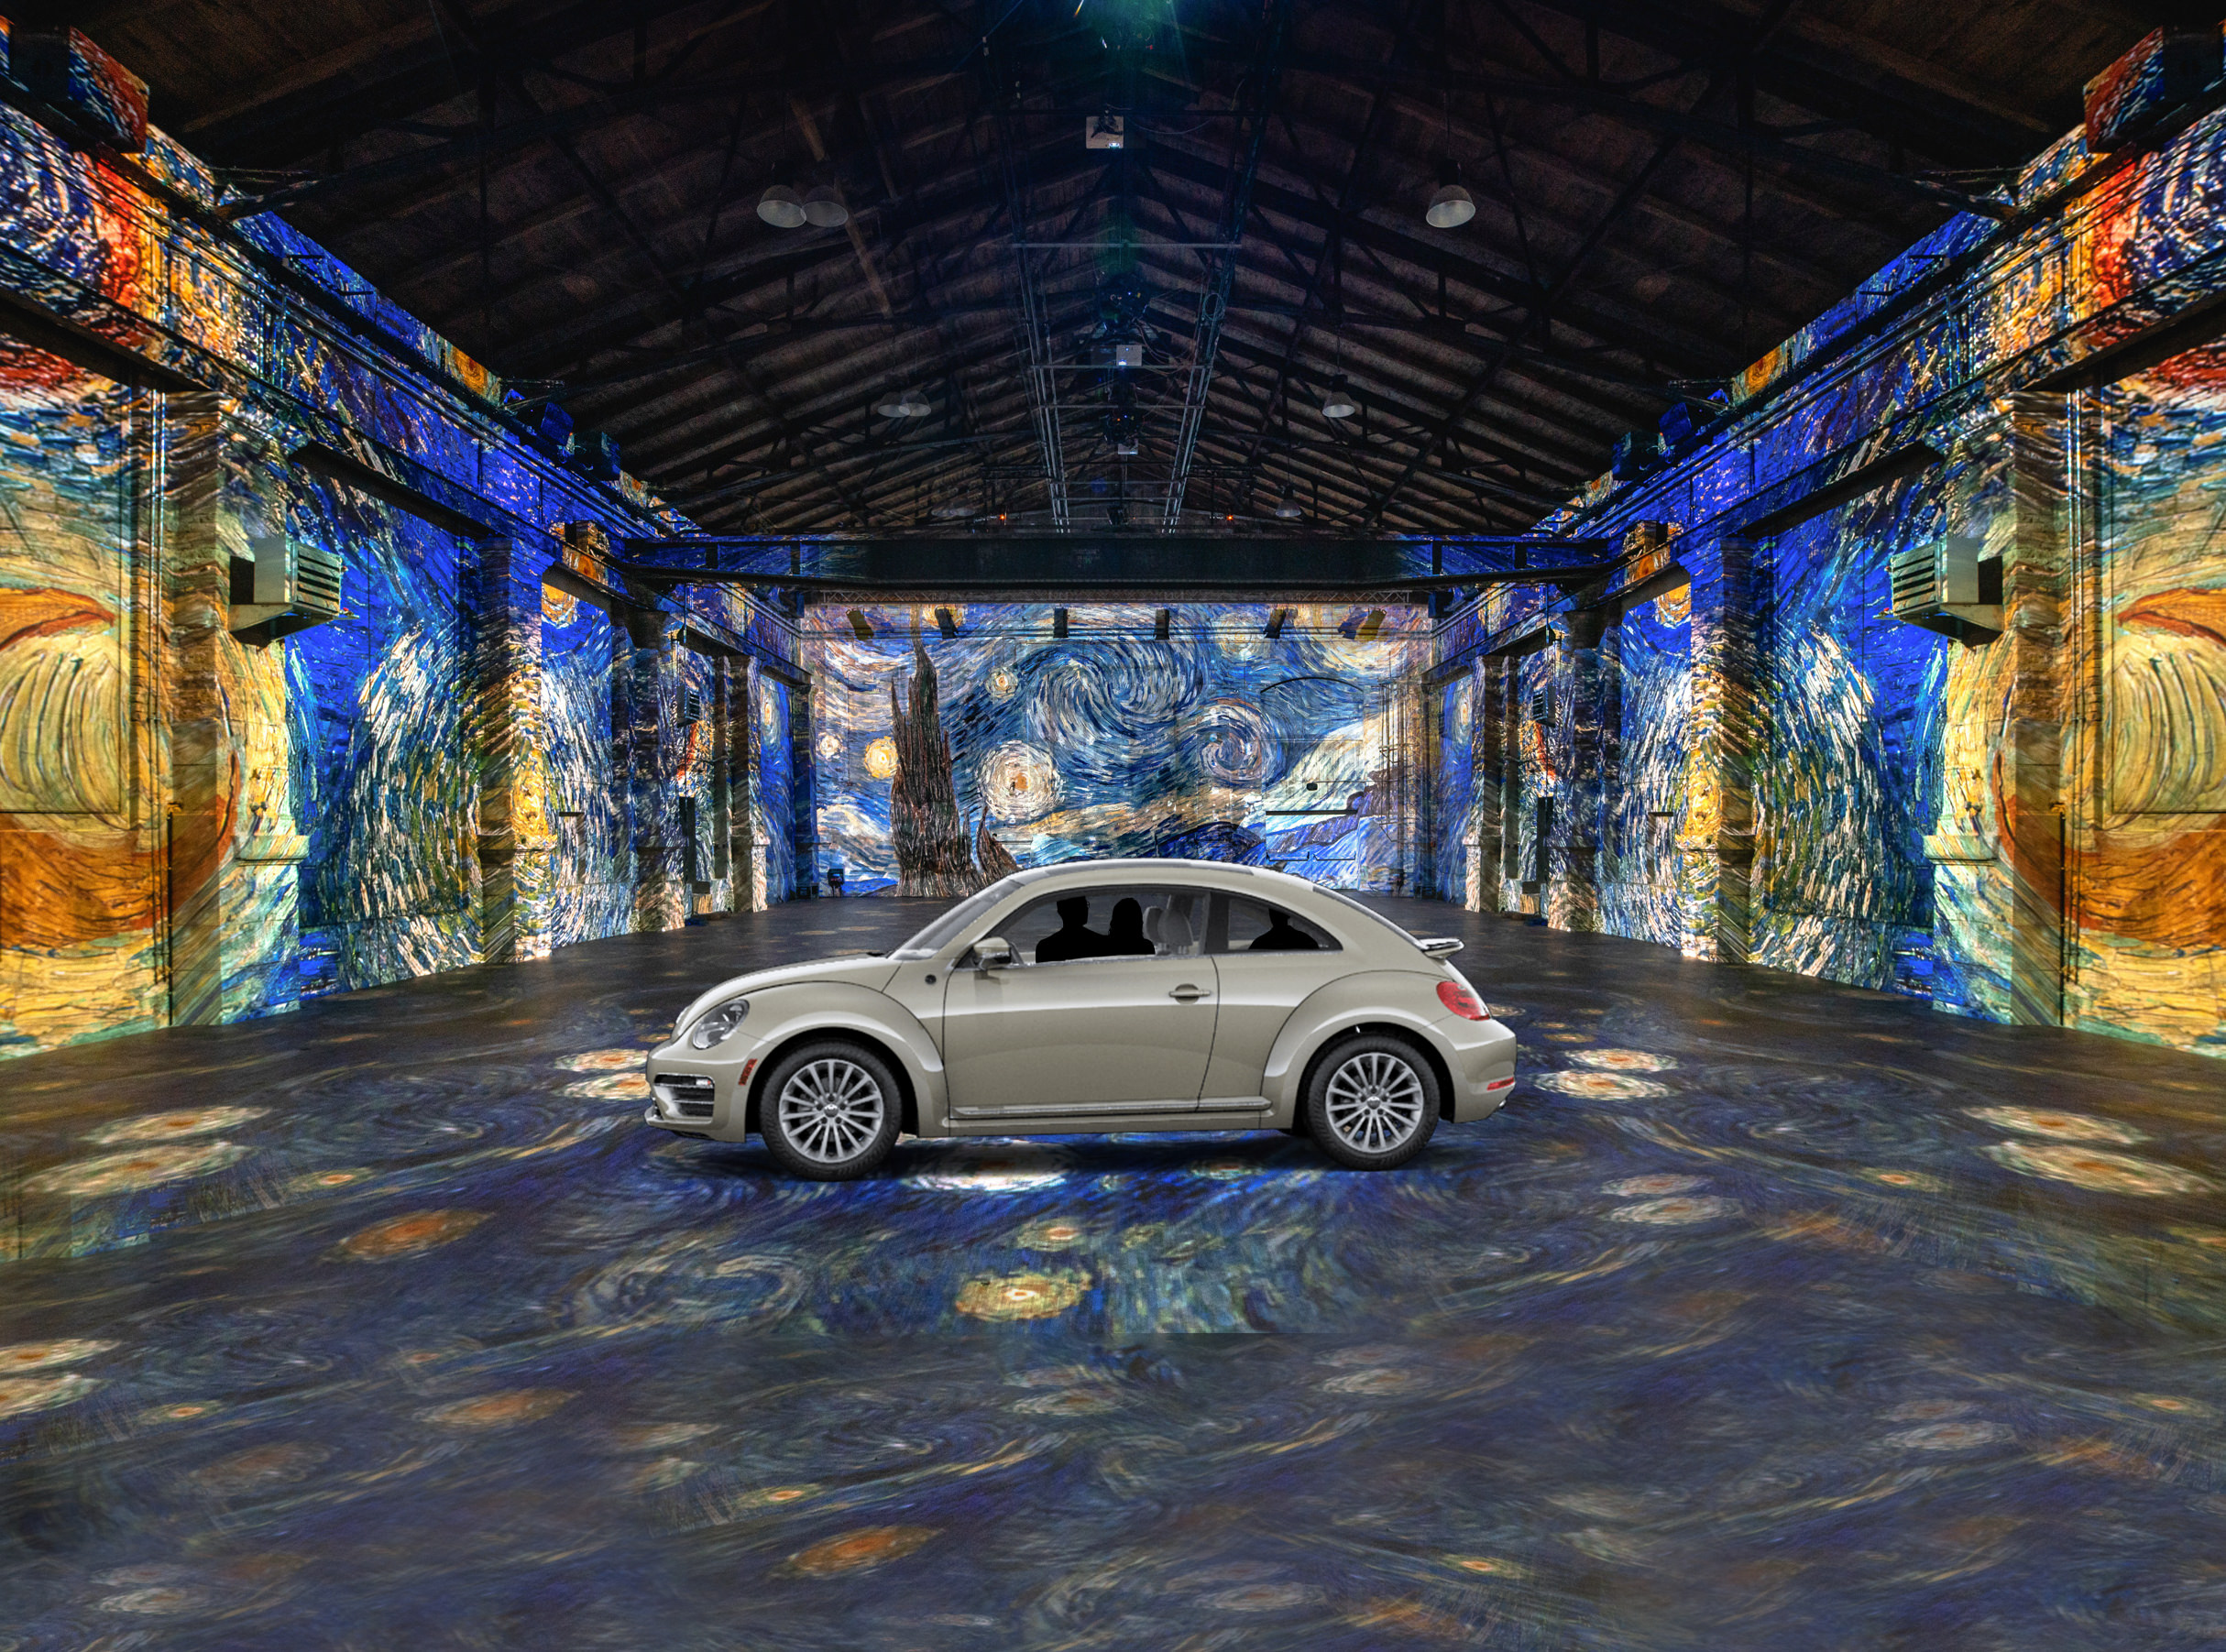 Van Gogh by Car! The World's First Drive-In Immersive Art Exhibit